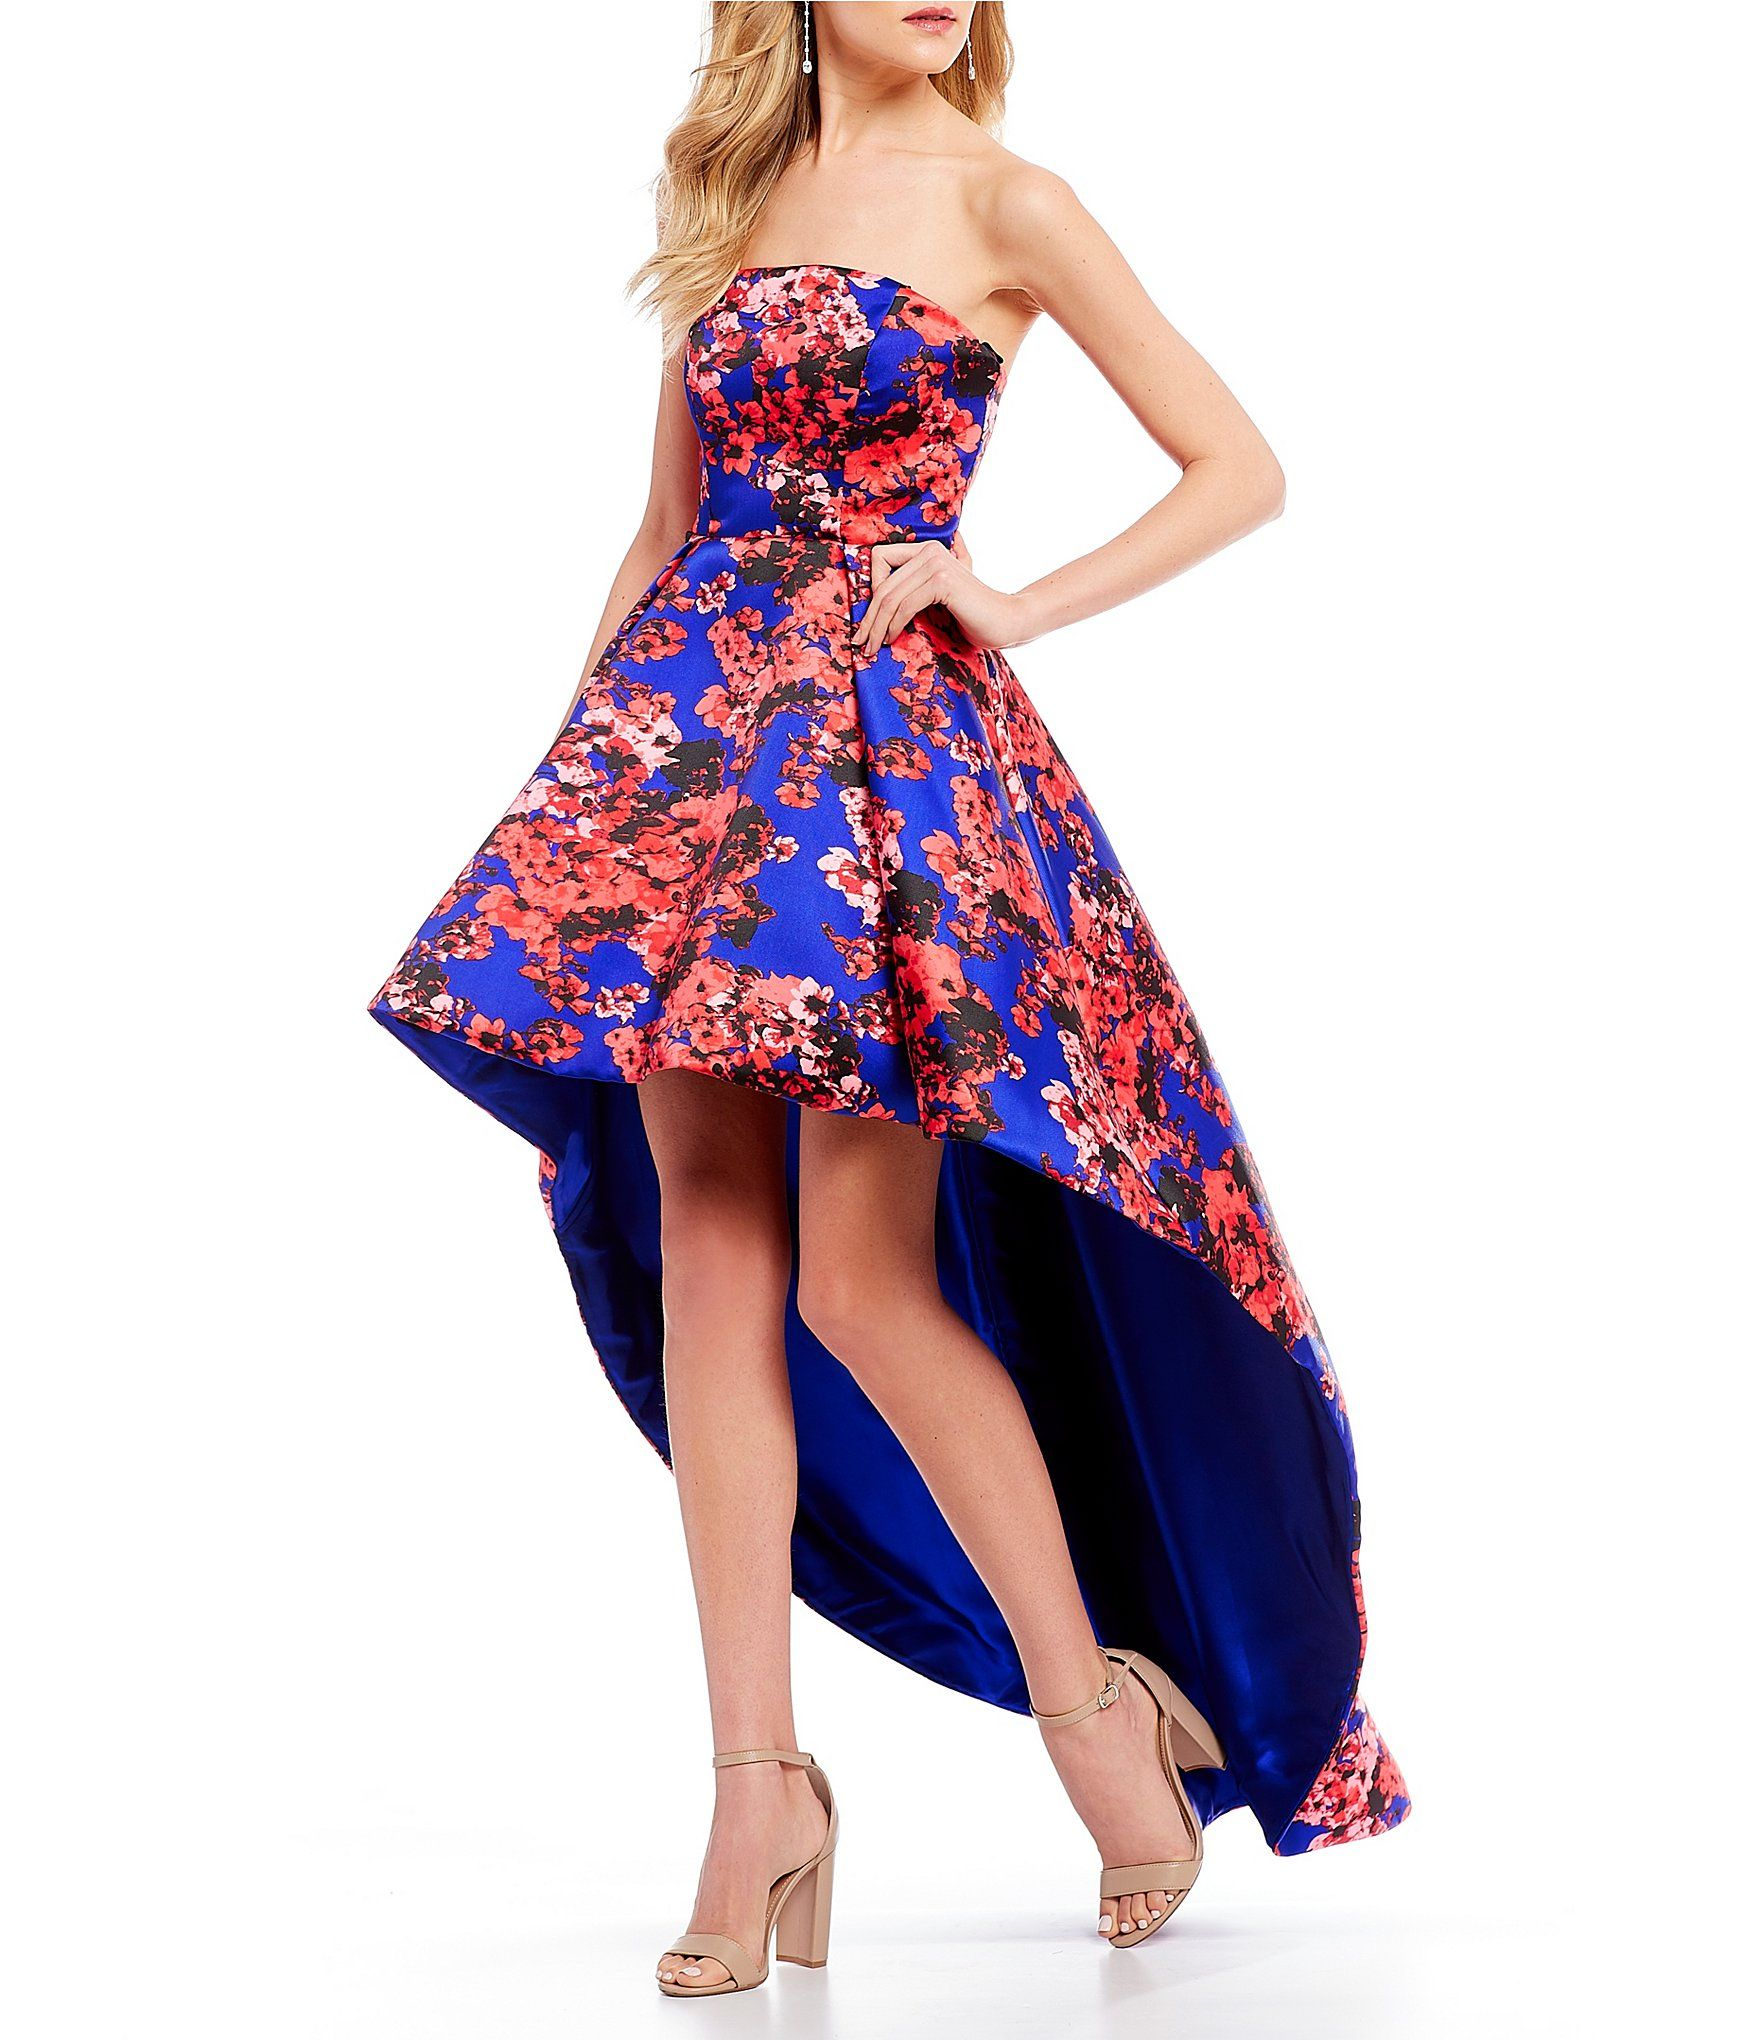 4b9890ea448 Shop for B. Darlin Strapless Floral Long High-Low Dress at Dillards.com.  Visit Dillards.com to find clothing